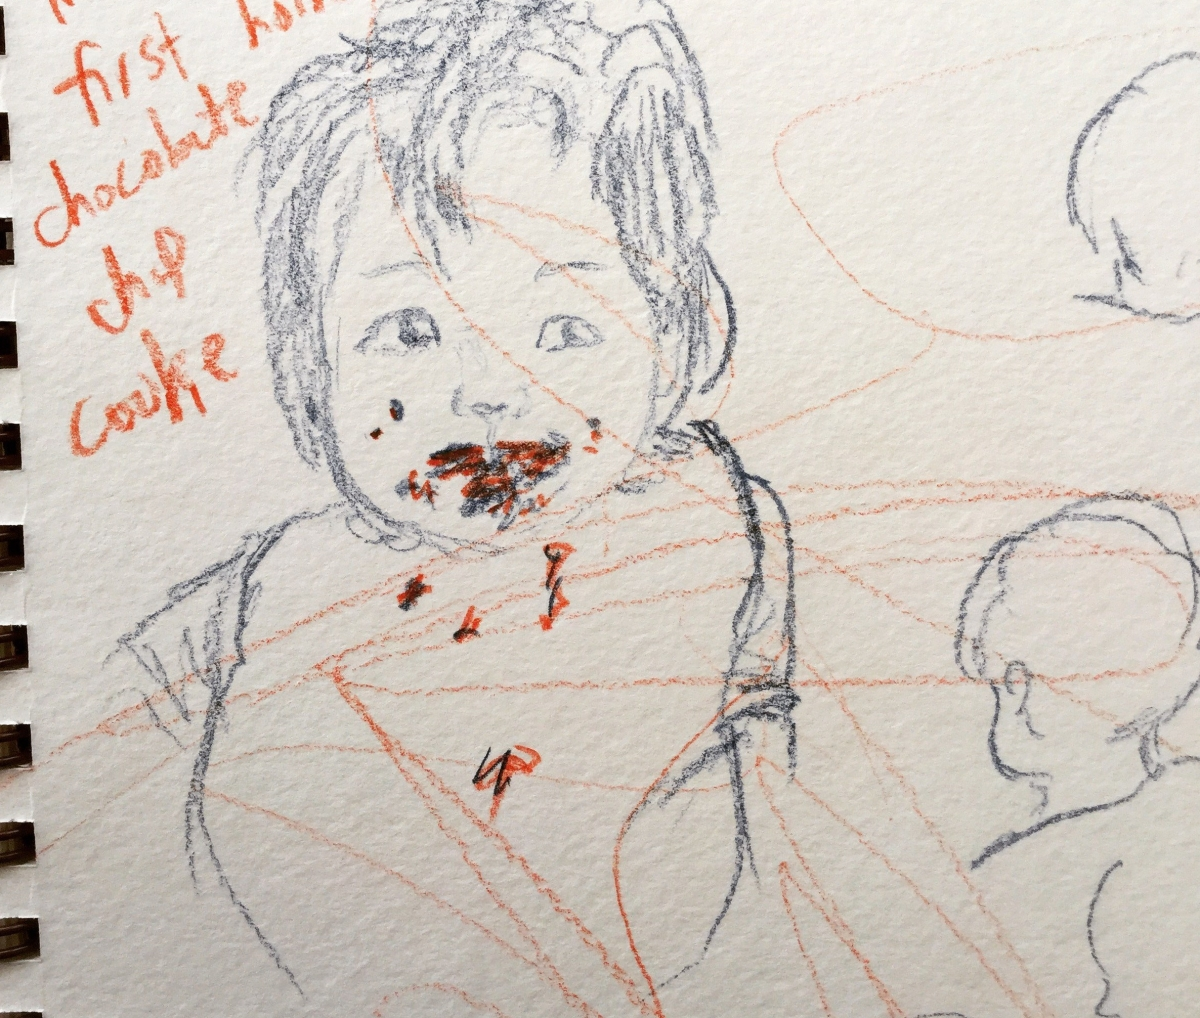 Sketch of 14-month-old Ada eating a chocolate chip cookies, Lisa Hsia